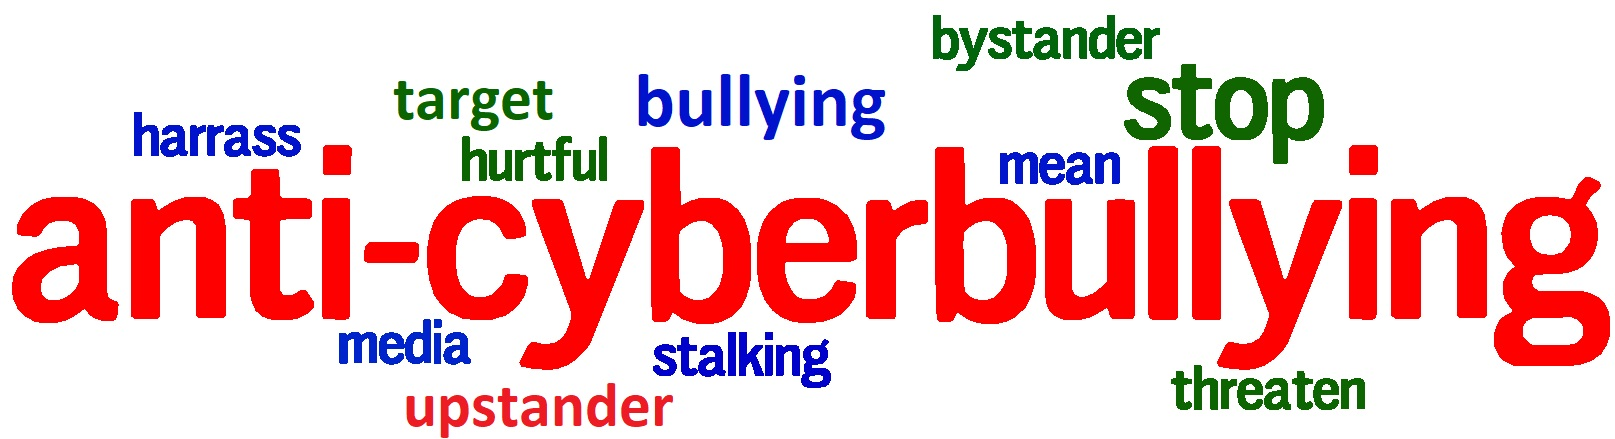 cyberbullying education and opportunity teach students Educationcom provides interactive learning opportunities that grow my students' knowledge and deepen their understanding no matter their ability level cathy whitehead 2016 tennessee teacher of the year.